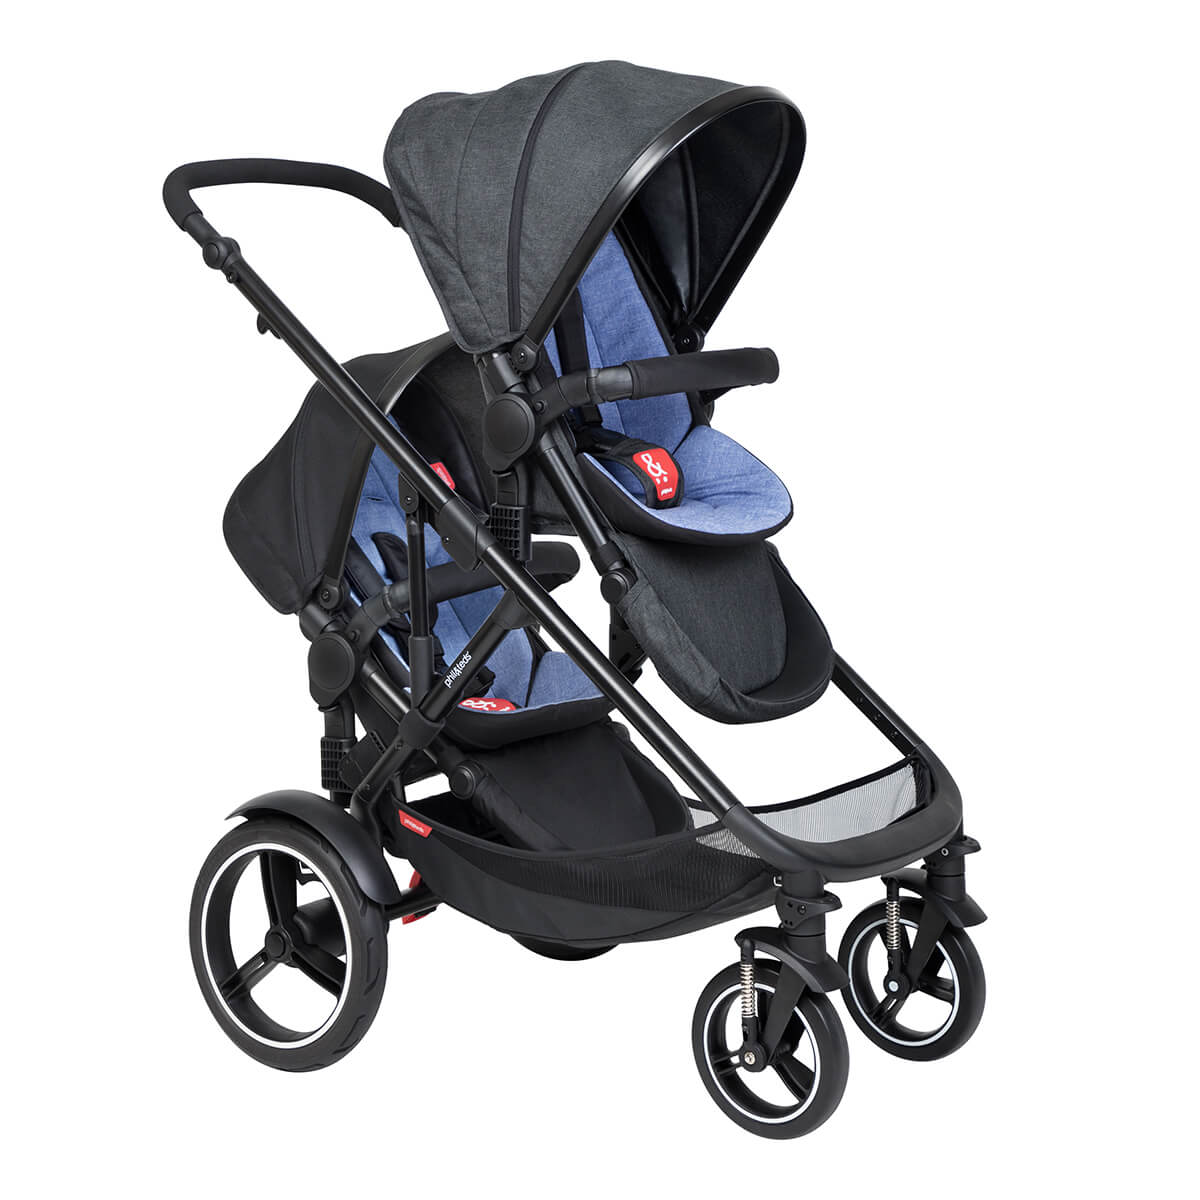 https://cdn.accentuate.io/4509913579597/19466204315842/philteds-voyager-inline-buggy-with-double-kit-in-rear-in-sky-blue-colour-v1626485629620.jpg?1200x1200